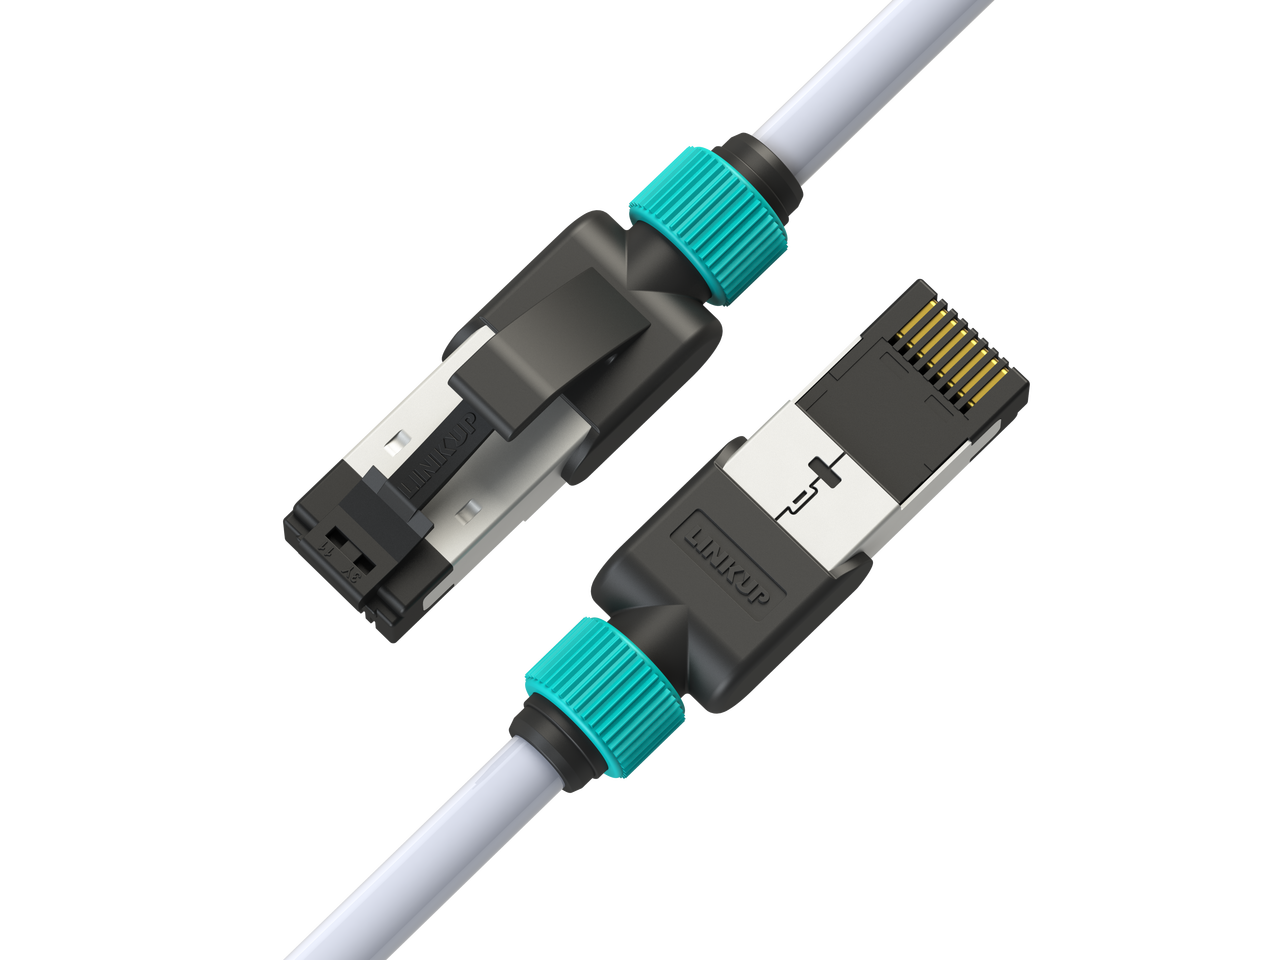 LAN Cables Ethernet Cable/&Connector 15m Gold Plated CAT-7 10 Gigabit Ethernet Ultra Flat Patch Cable for Modem Router LAN Network Dfstgwgds Computer Cables Built with Shielded RJ45 Connector